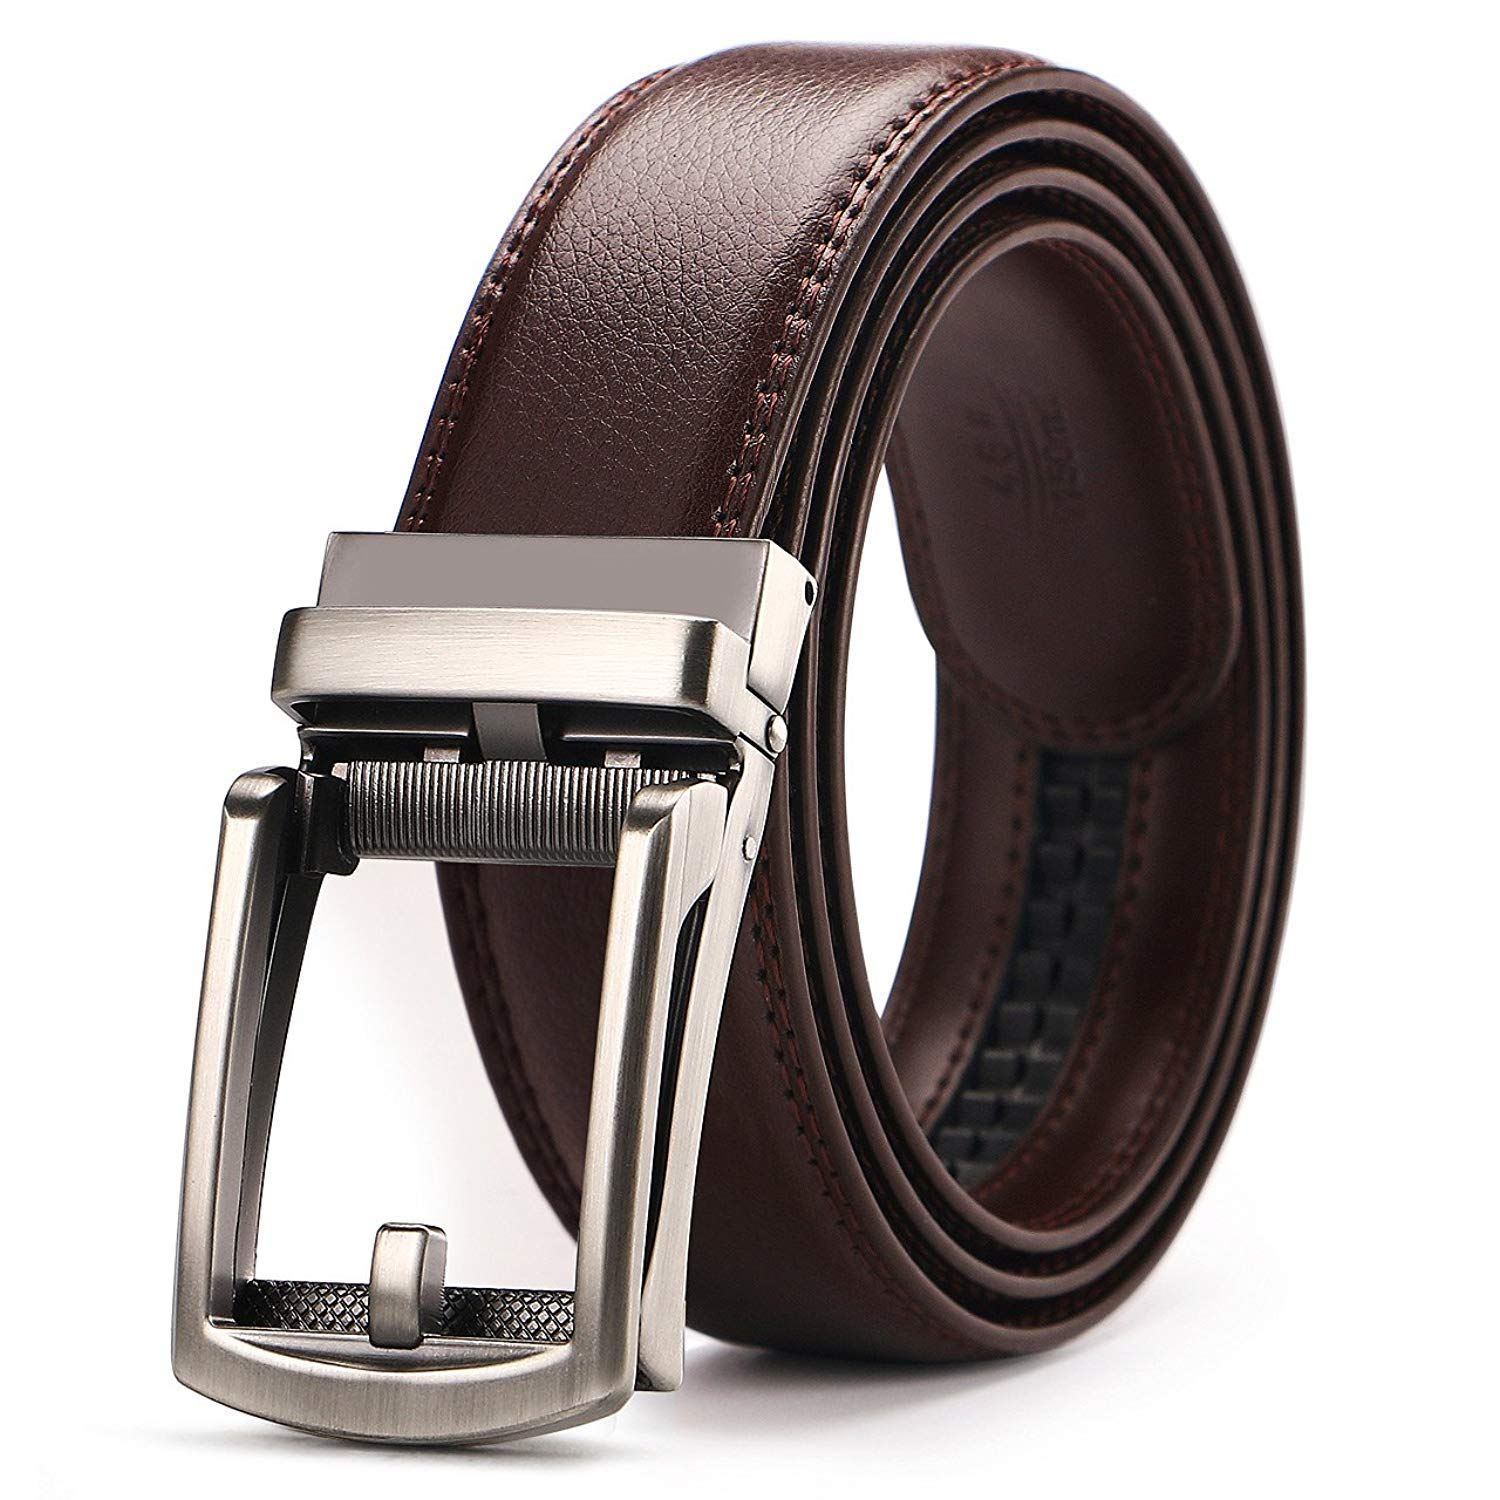 BINMA Men's Belt, Leather Ratchet Belt for Men Dress with Automatic Buckle